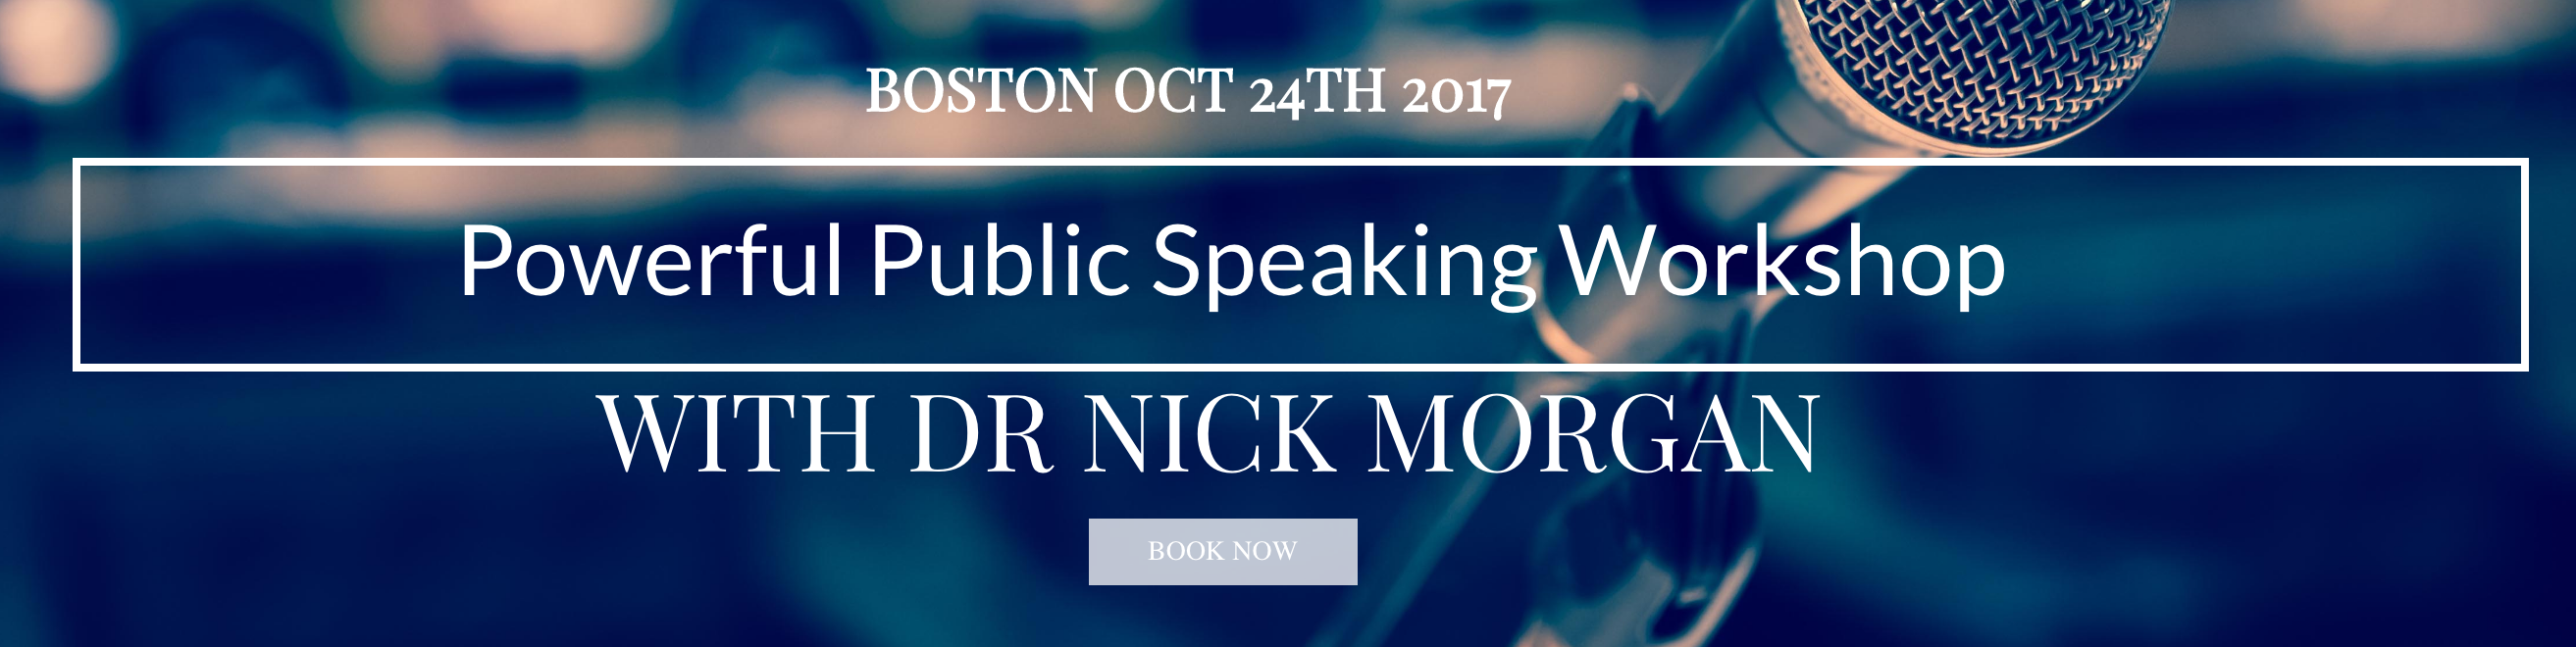 Powerful Public Speaking Workshop with Dr. Nick Morgan - Boston - Oct 24th 2017